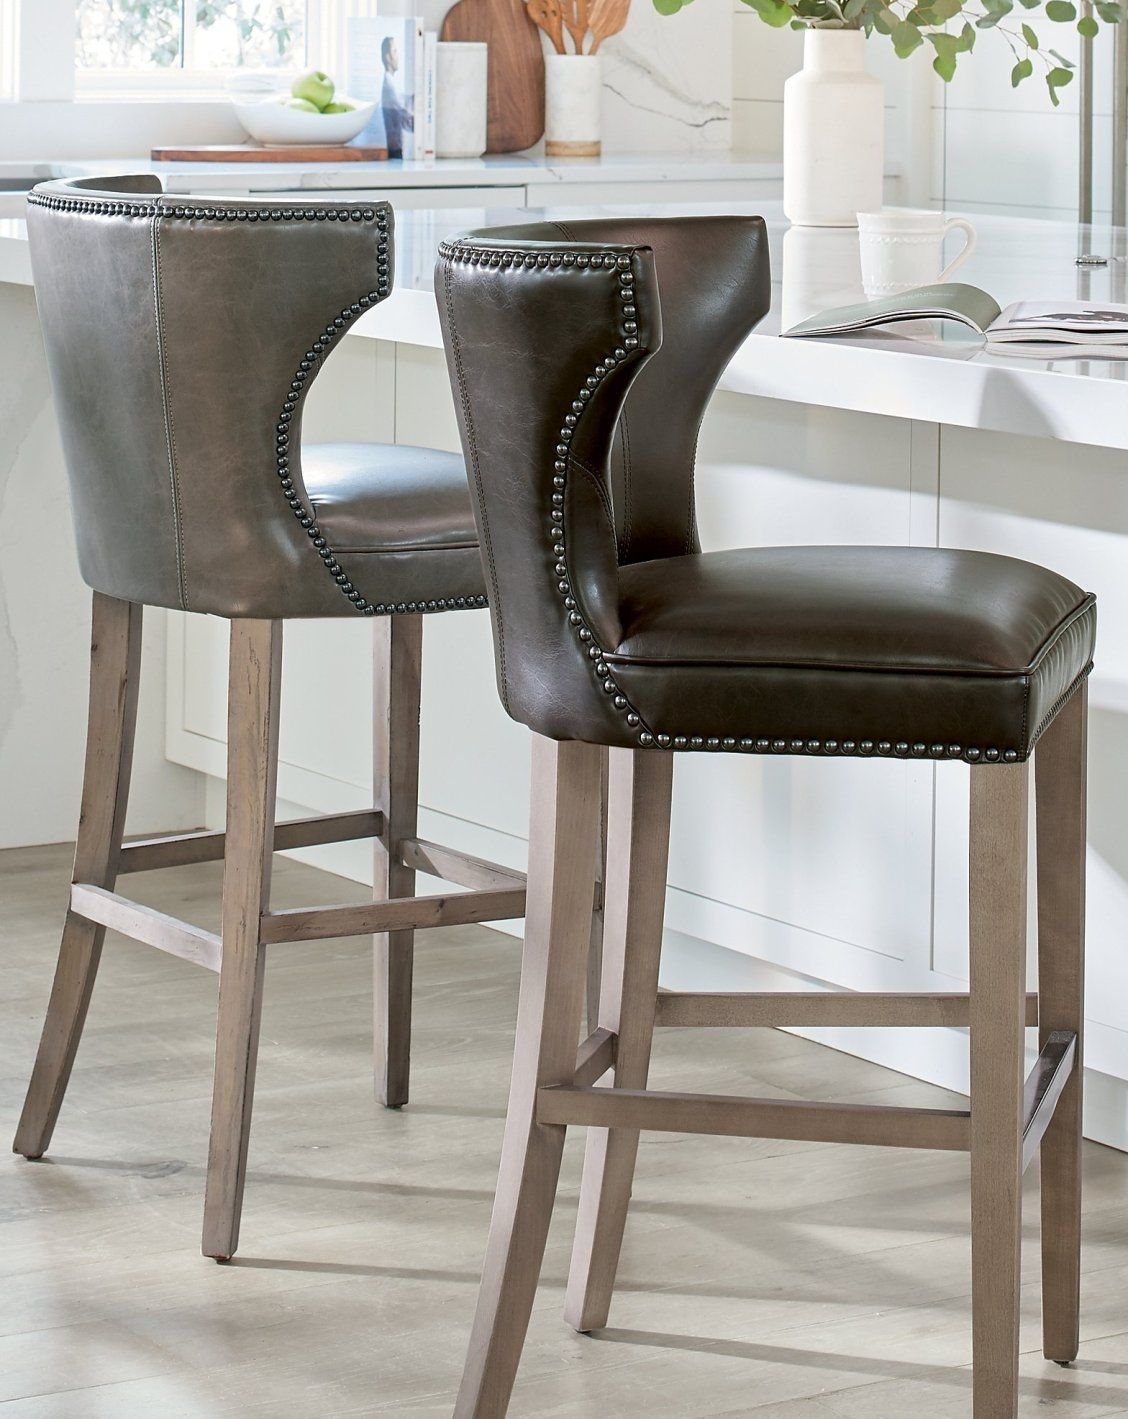 Gracefully Styled With A Swooping Winged Back The Vintage Look Meredith Counter Stool Is Really Comfortable Too W Counter Stools Furniture Dining Room Small